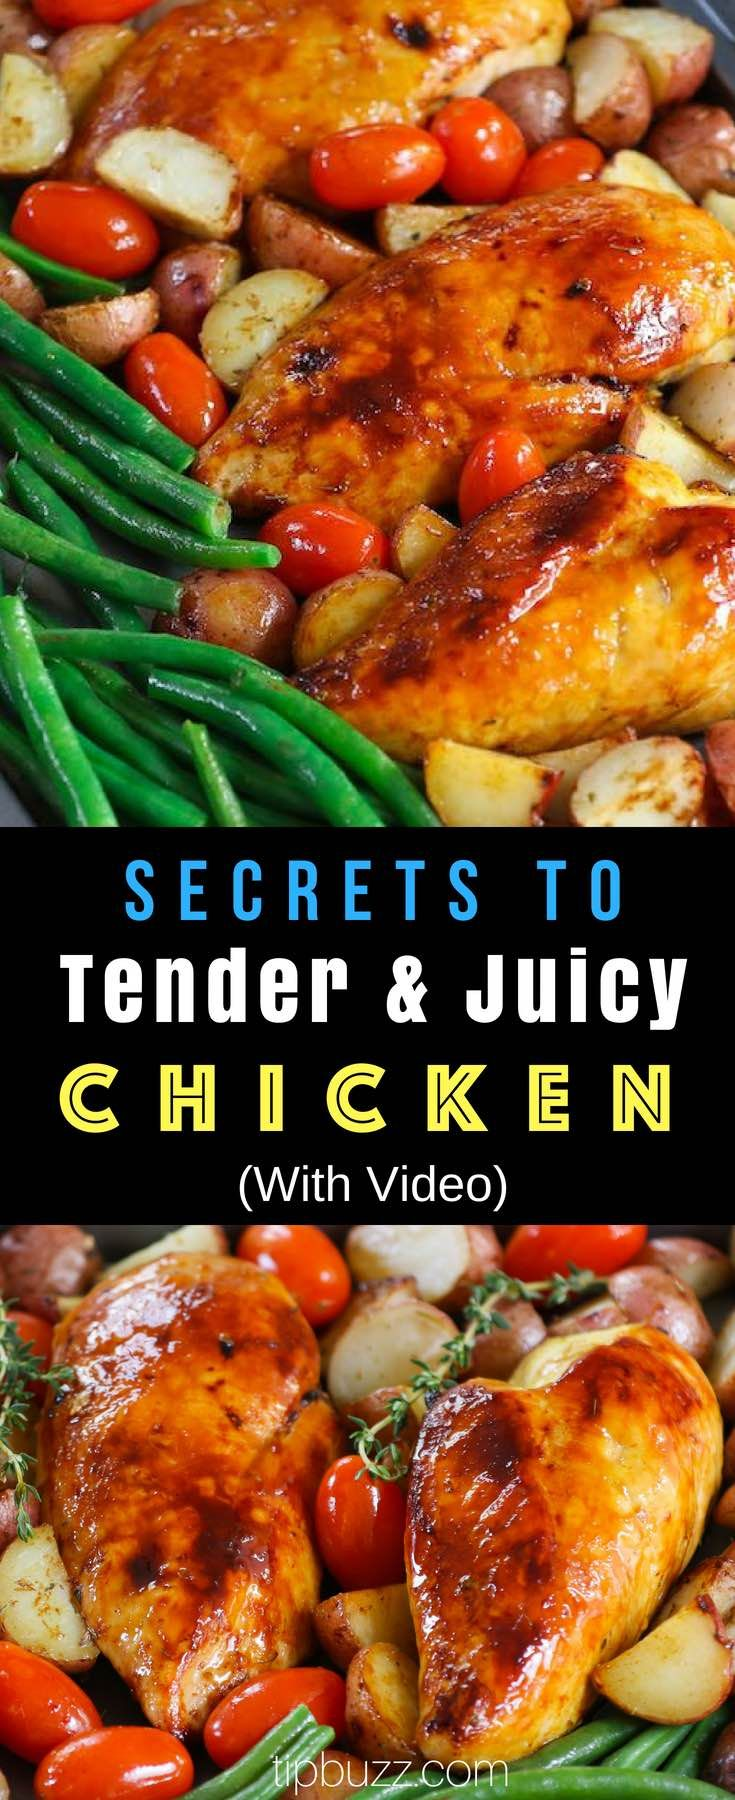 How Long to Bake Chicken {Secret to Perfect Chicken} | TipBuzz